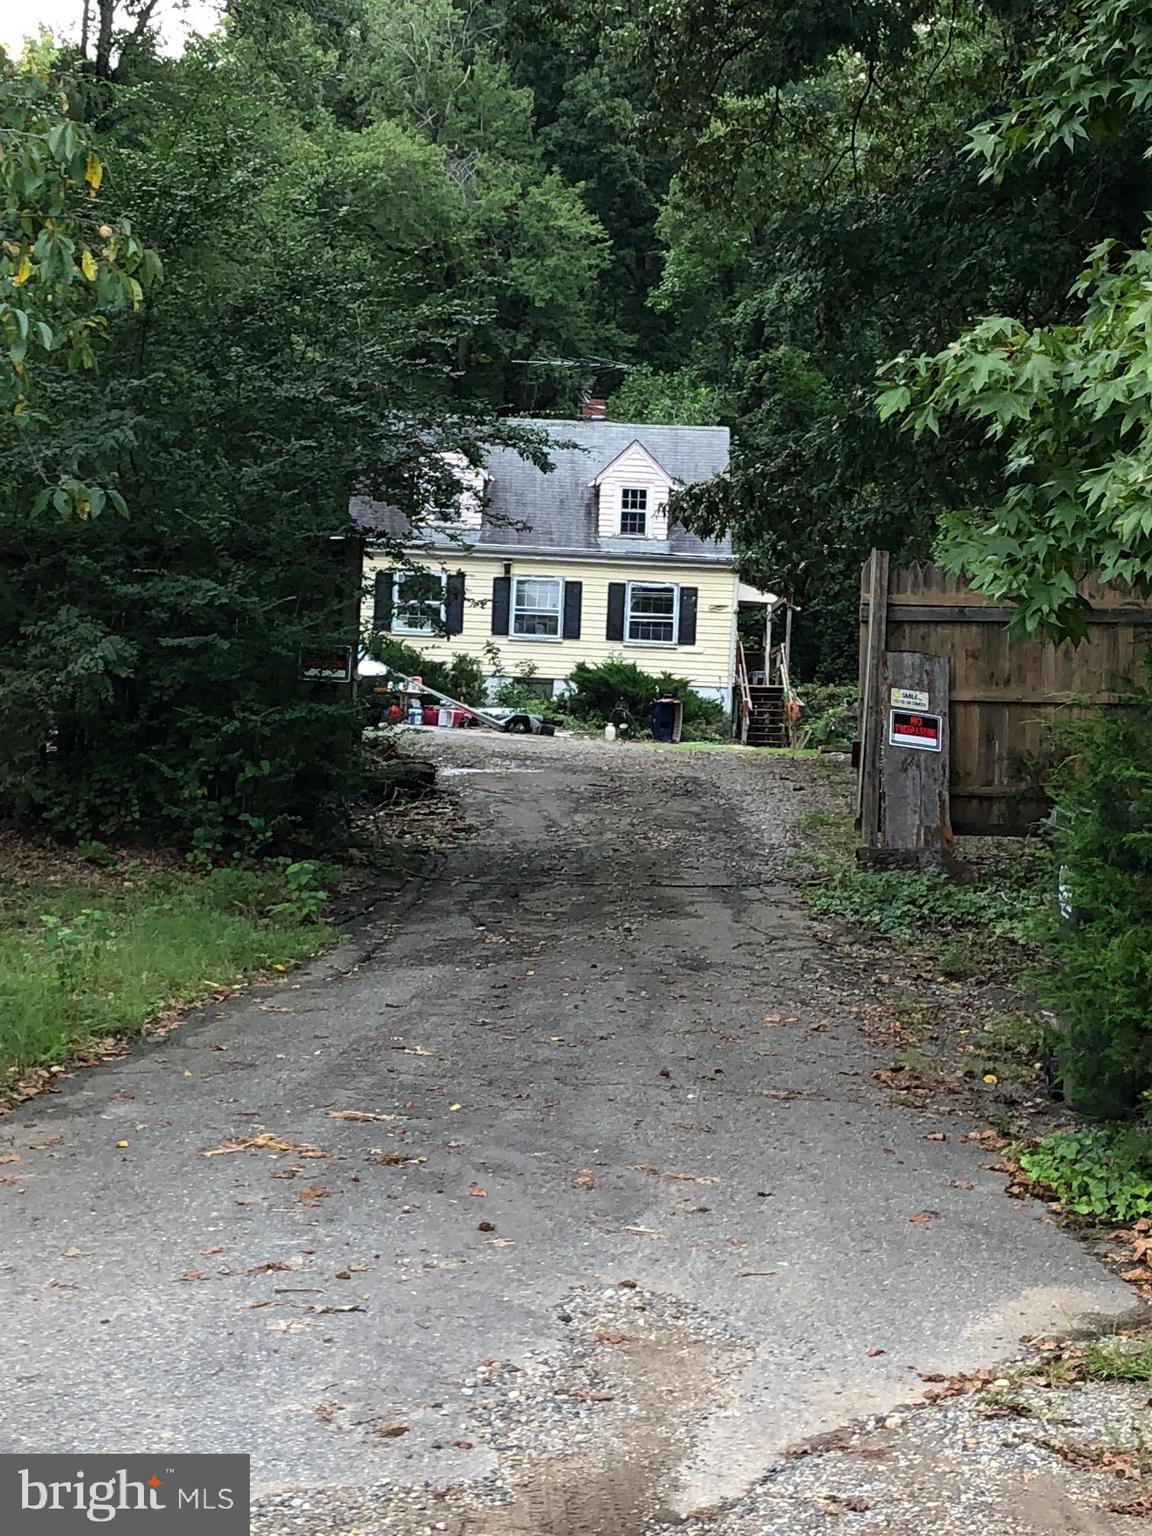 """VALUE IN LAND 2.81 ACRES,  EXISTING HOUSE IS IN 'AS IN' CONDITION, OFFERS REQUIRE """"AS IS""""  ADDENDUM - NO INFO ON HVAC, HWH,& SEPTIC, CALL FOR INFORMATION, HOME IS NOT VACANT UNTIL 2/28/19 CASH ONLY. SEE DOCUMENTS."""